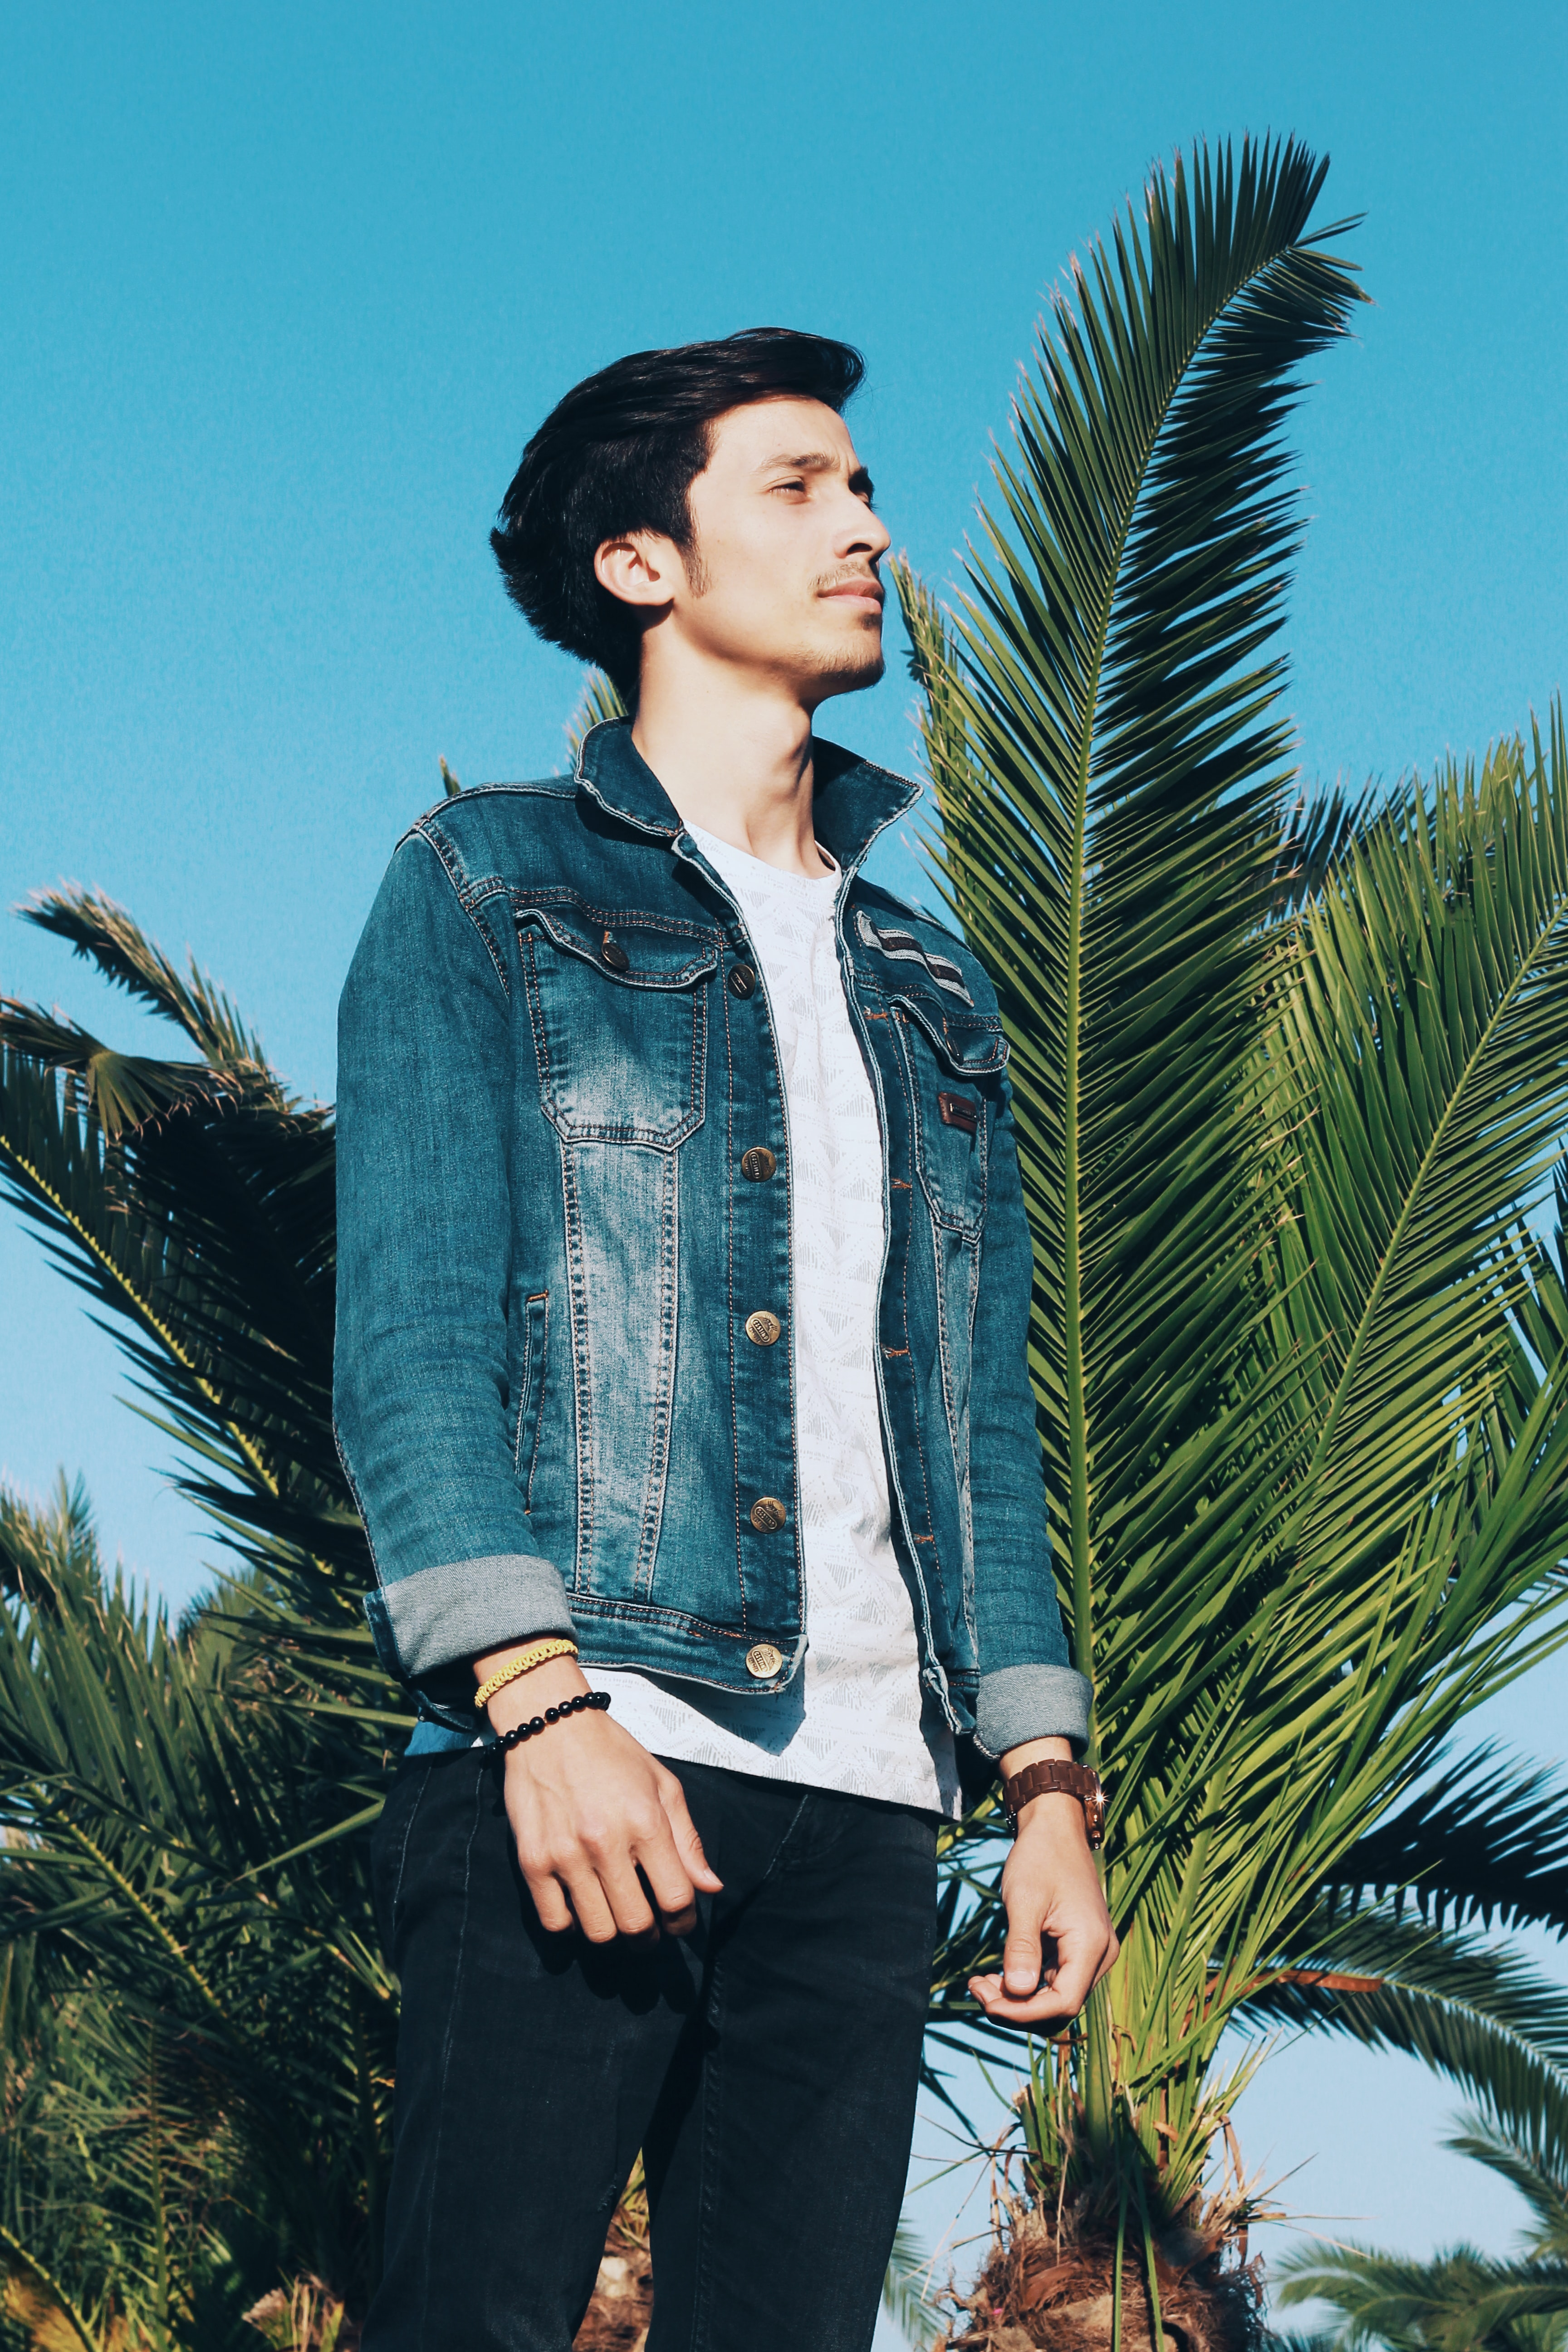 A smiling man in a jean jacket in front of a palm tree and blue sky